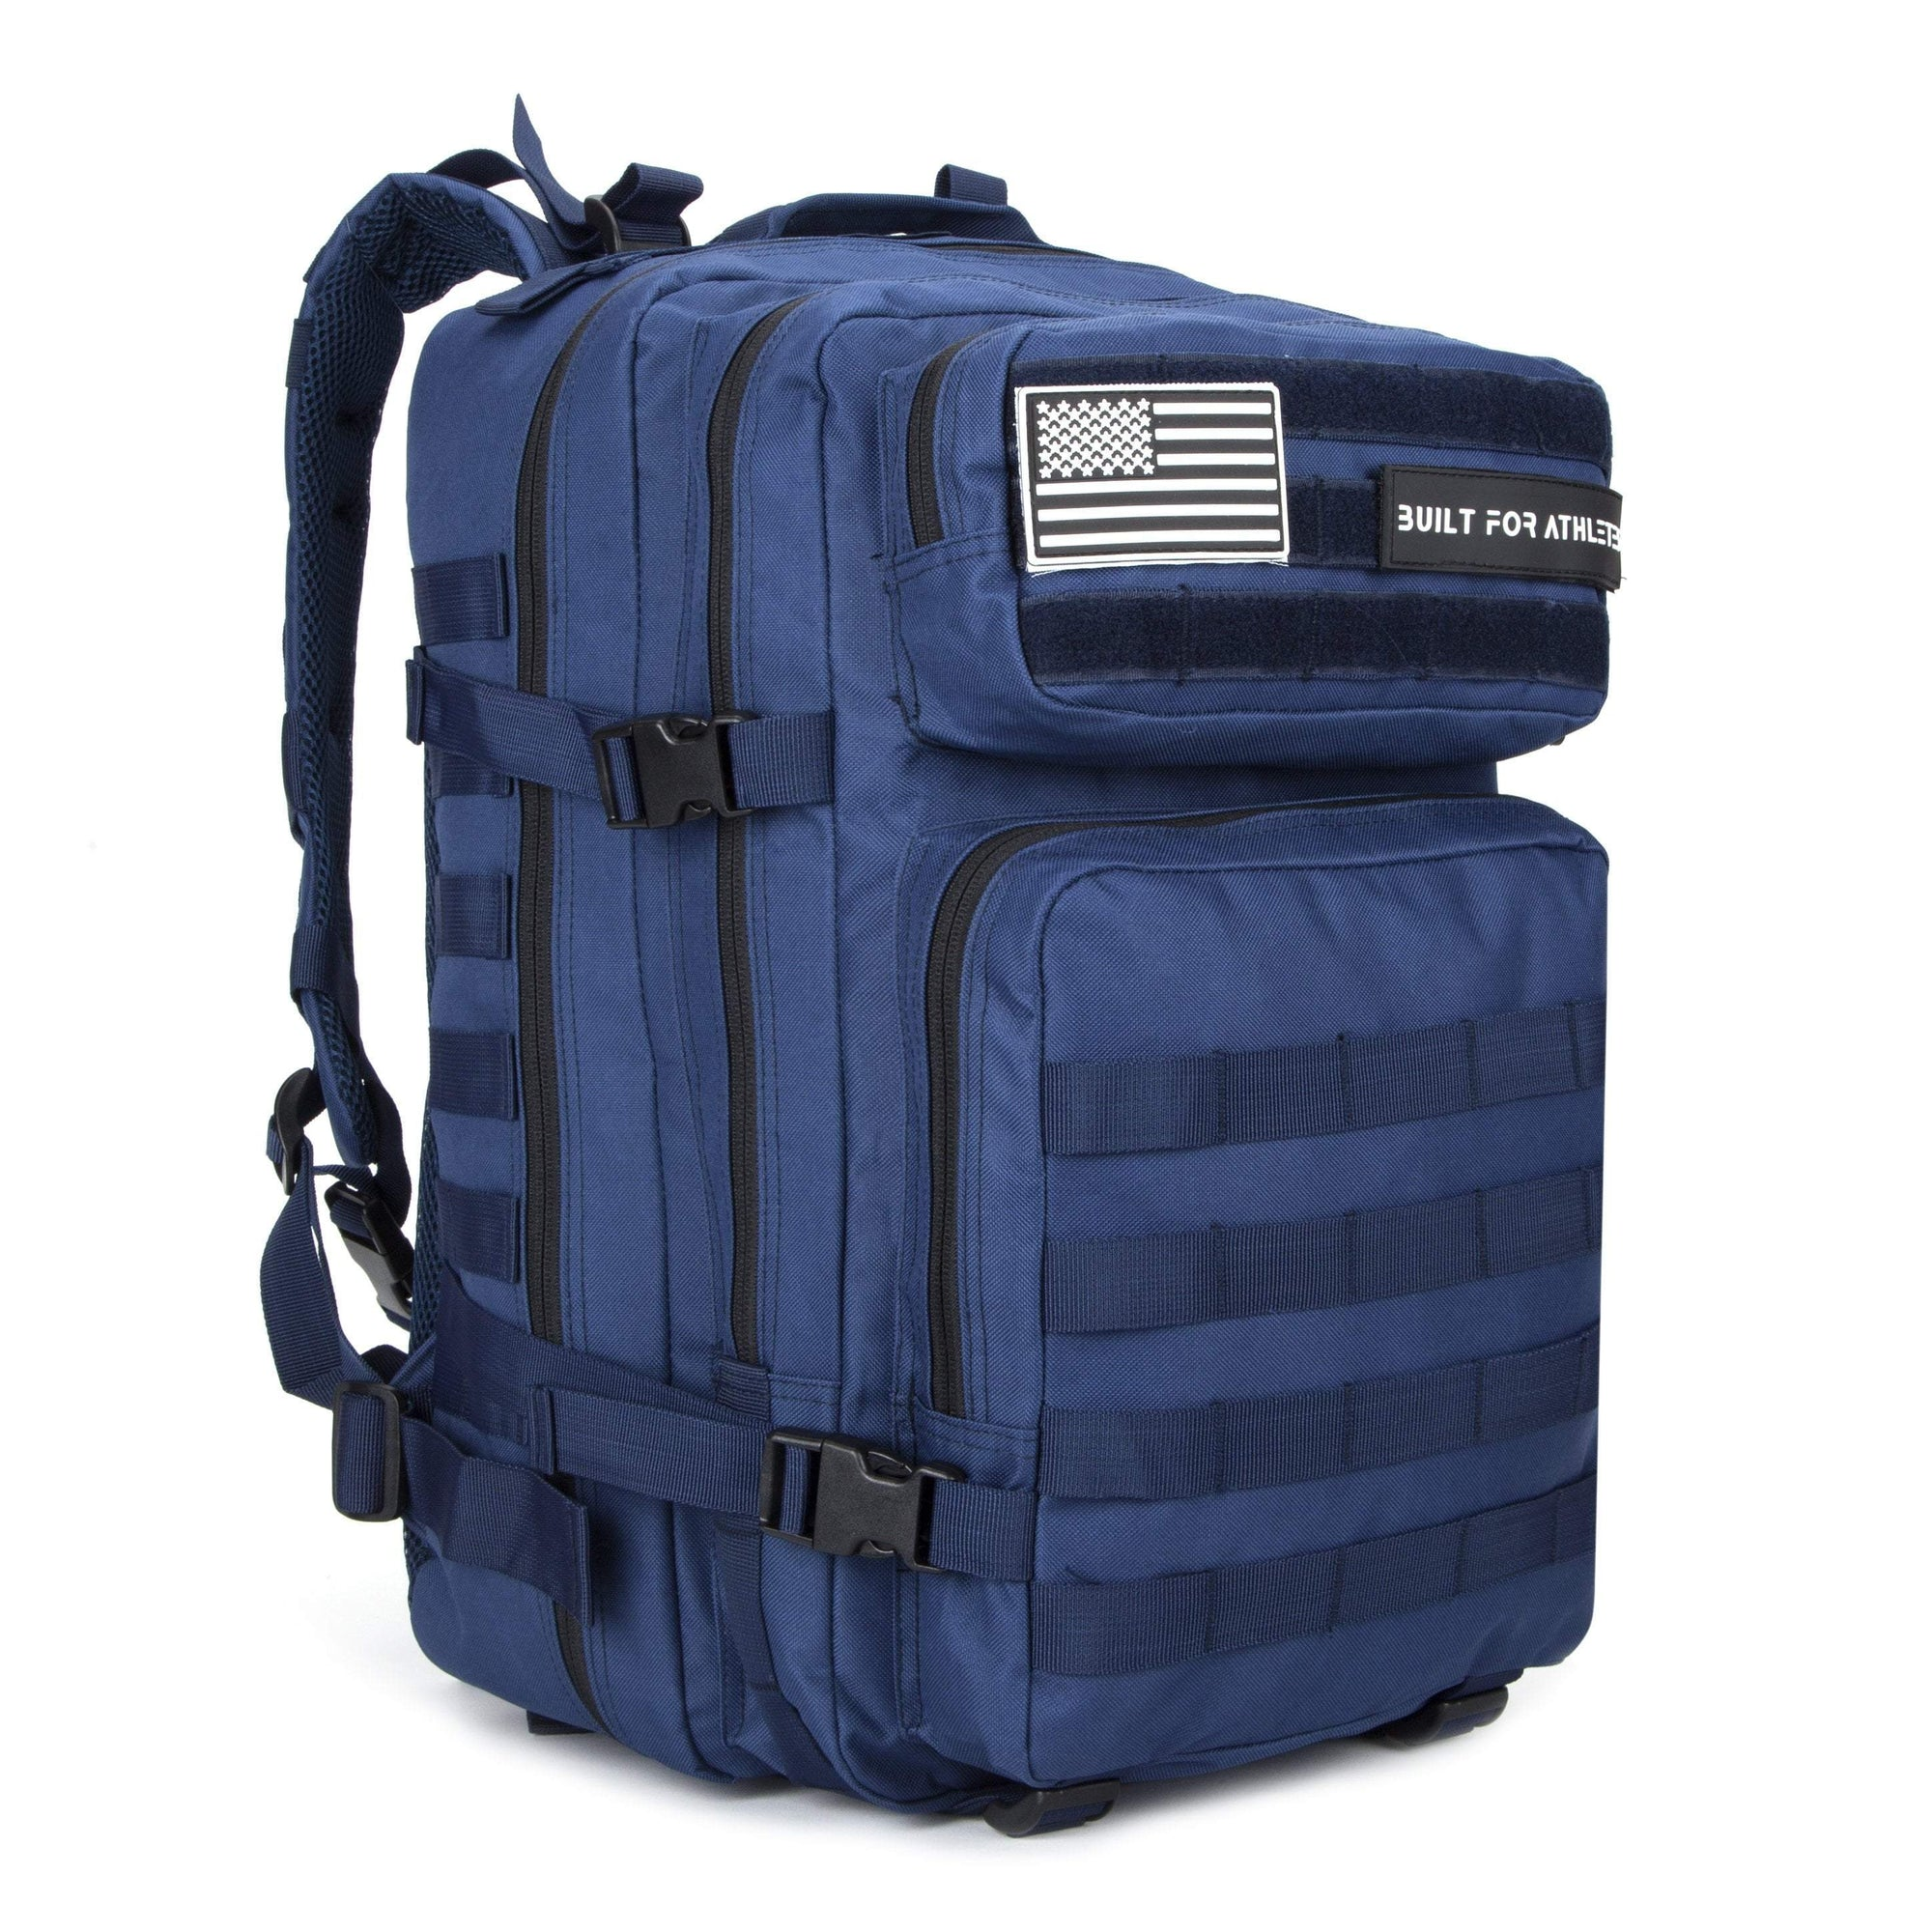 MetCon Store Backpacks Navy Blue Hero Backpack